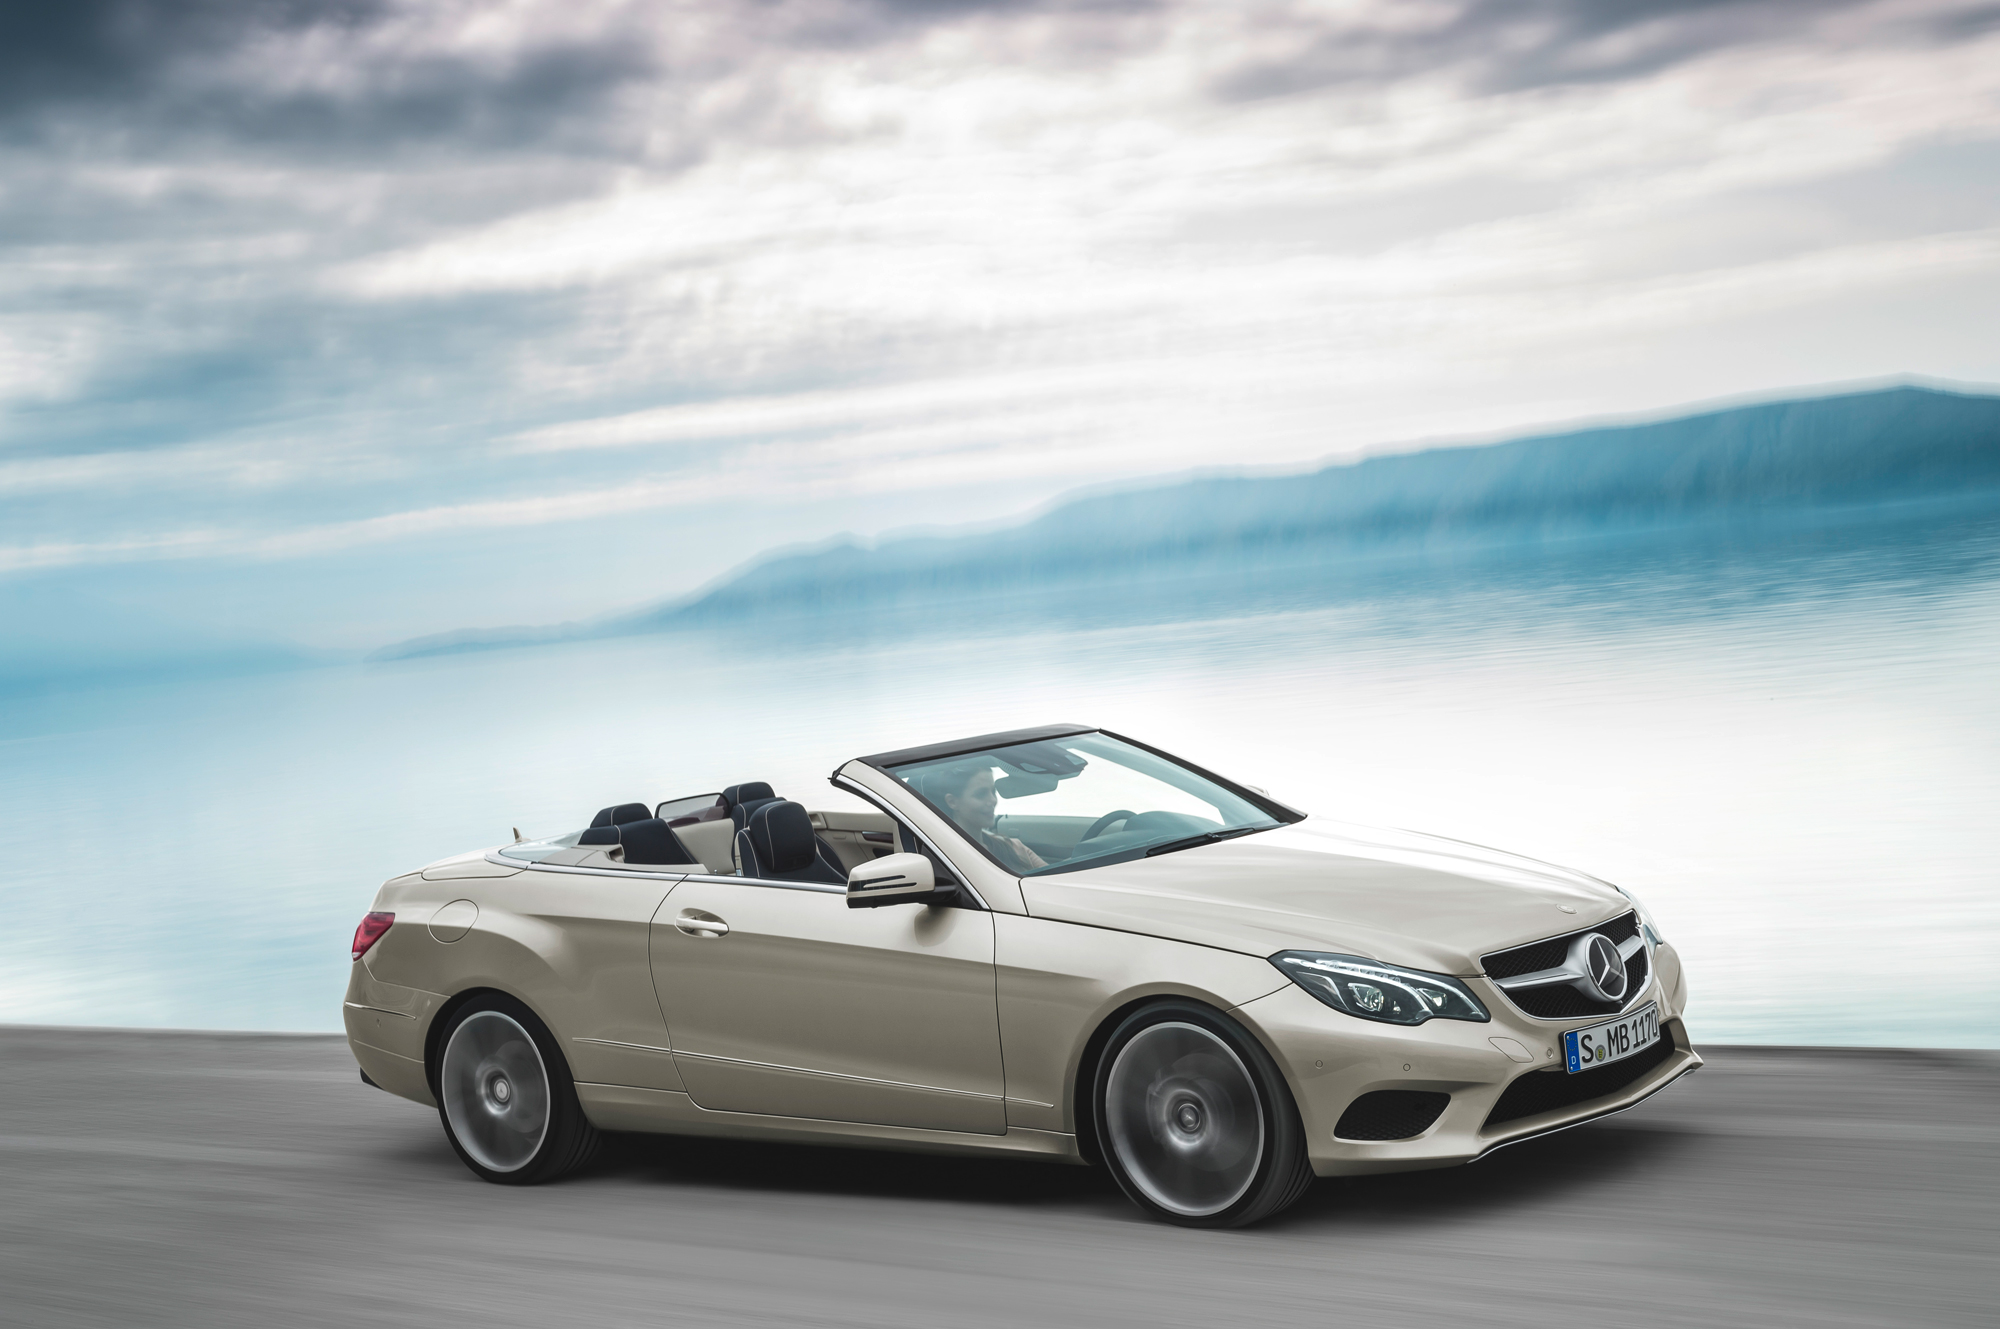 Review prices spec for 2014 Mercedes E400 CabrioletMotoring Middle